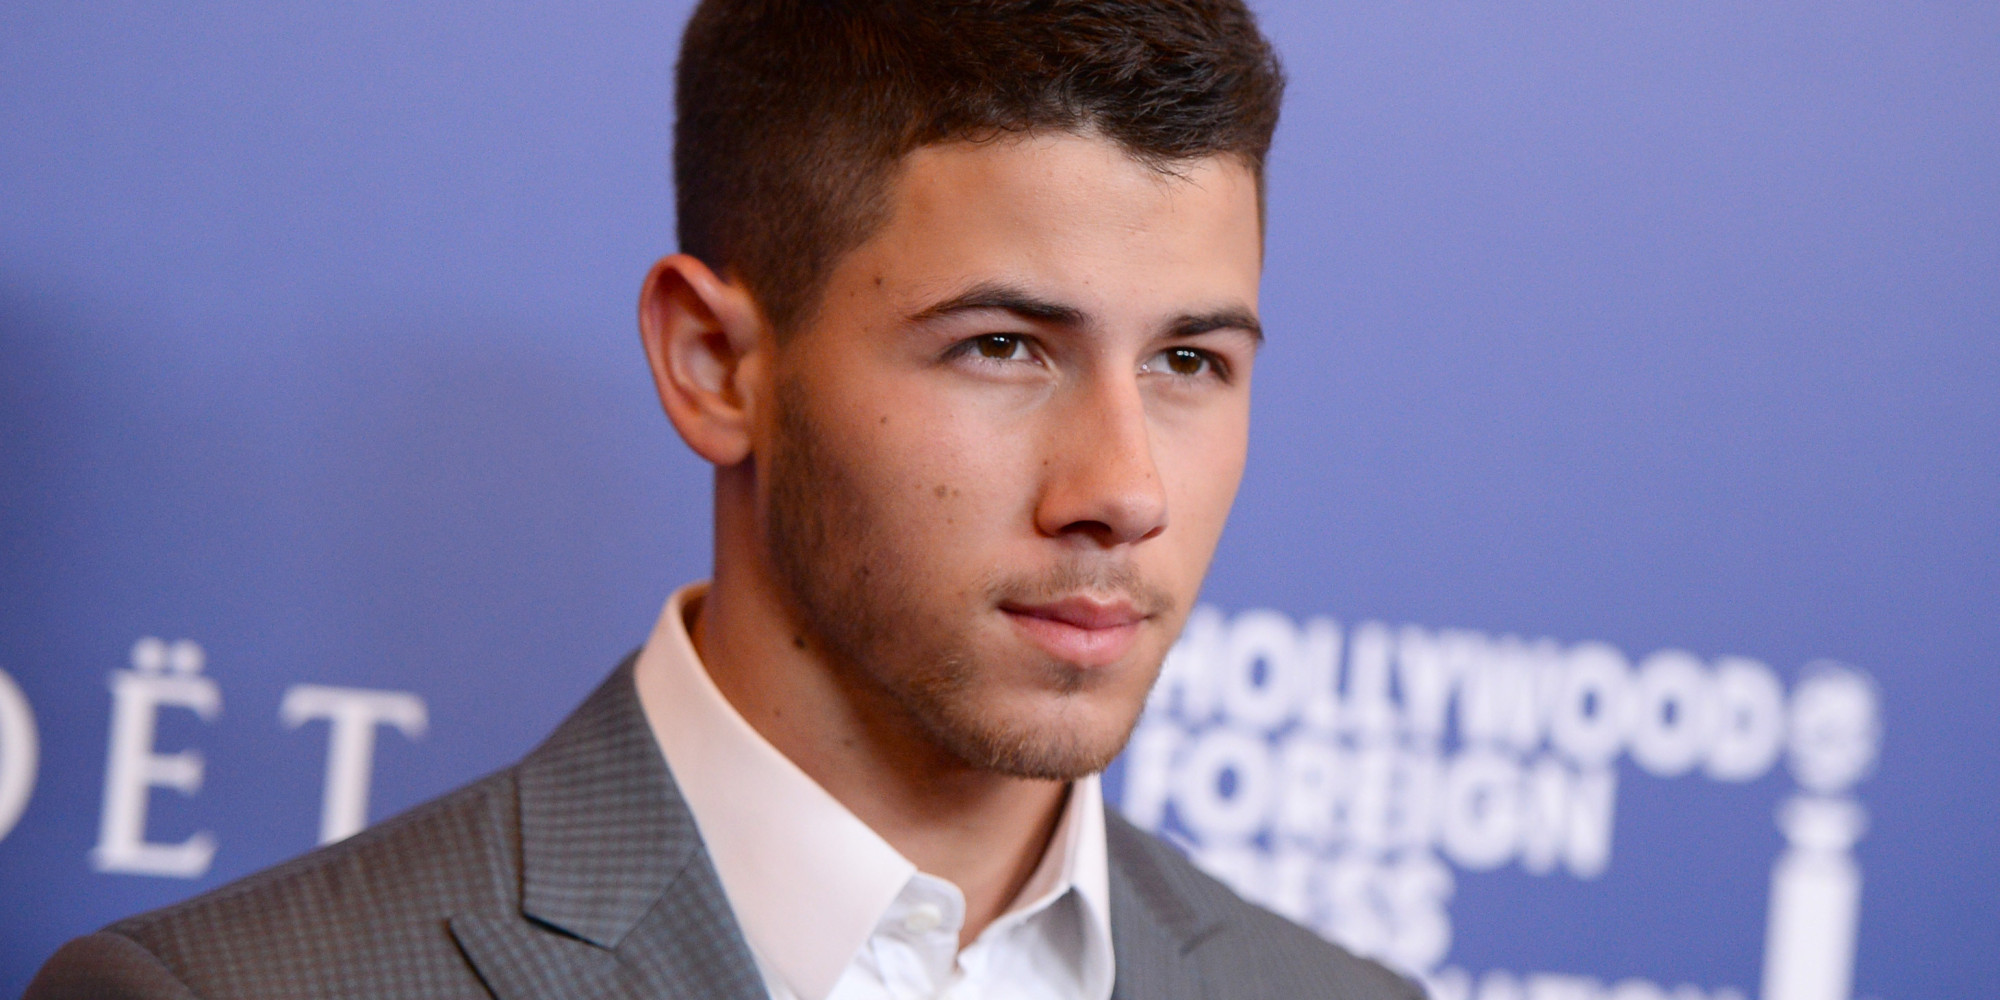 Nick Jonas Actor Jumanji Welcome to the Jungle Nick Jonas is best known as one of the Jonas Brothers a band formed with he and his brothers Kevin and Joe